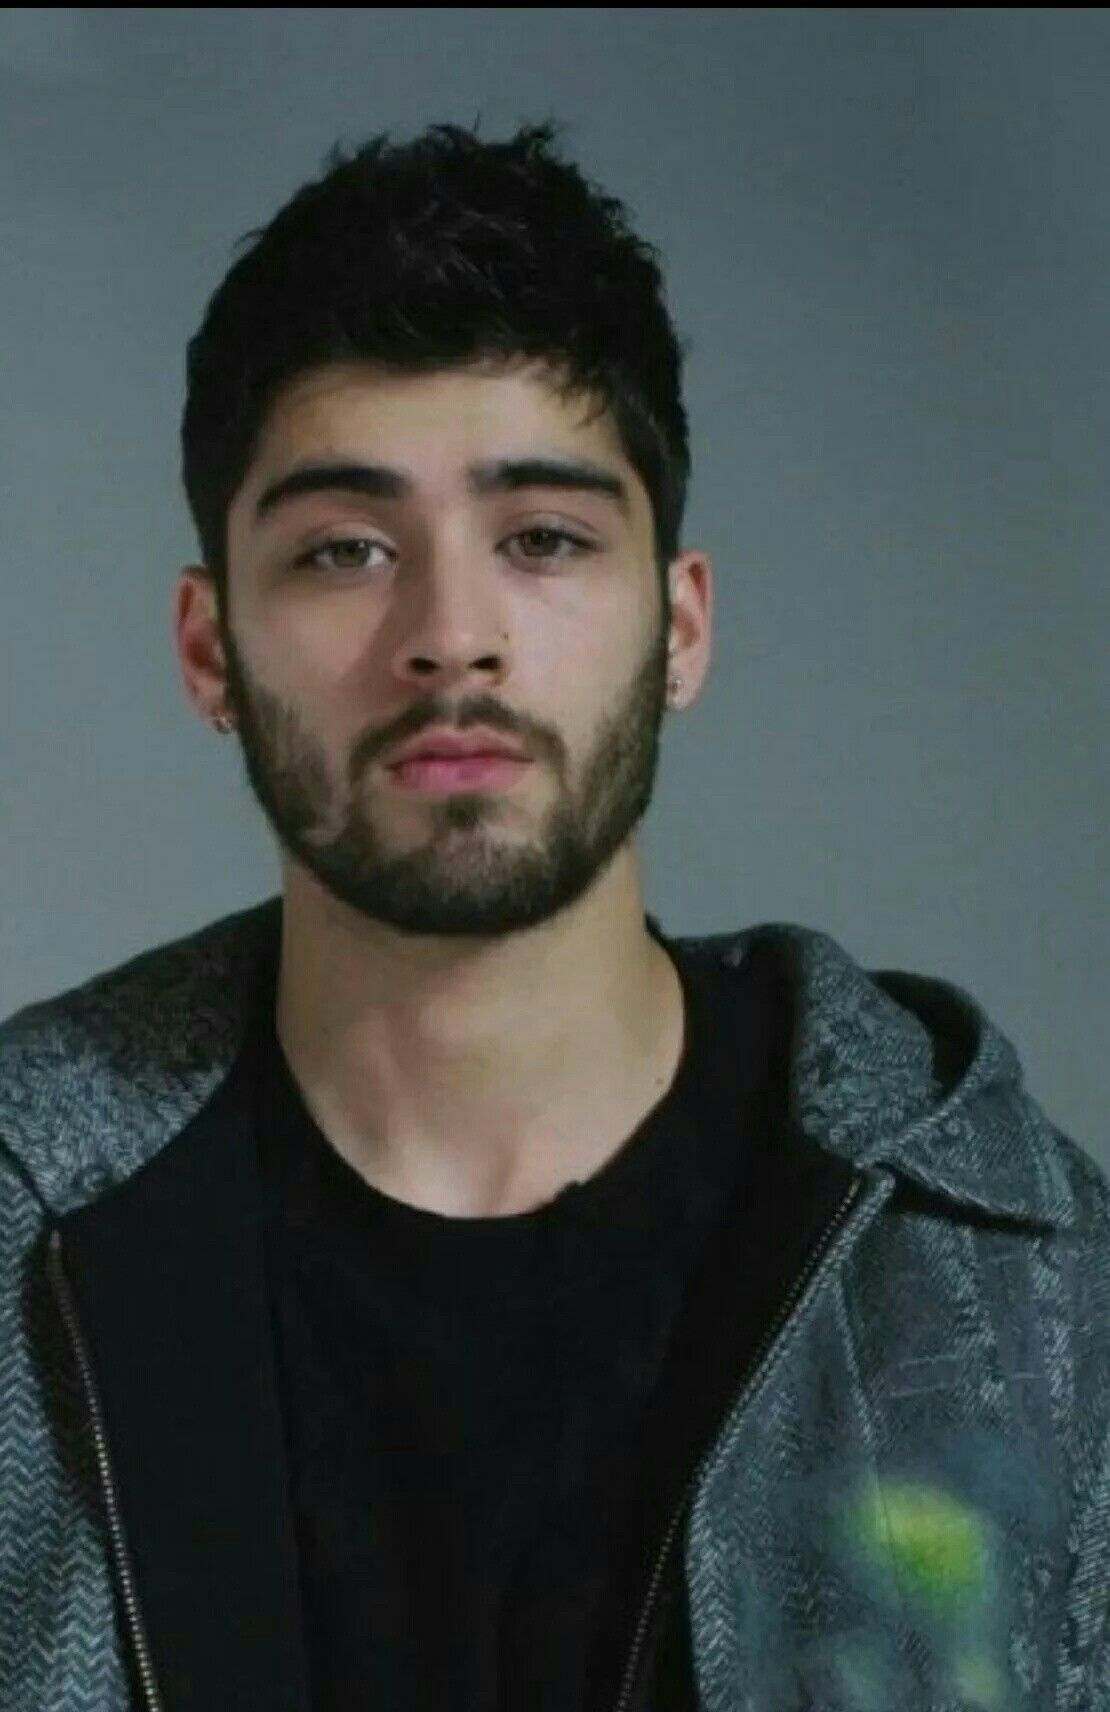 Haircuts for young men pin by ada on zαyиie  pinterest  zayn zayn malik and sexy men